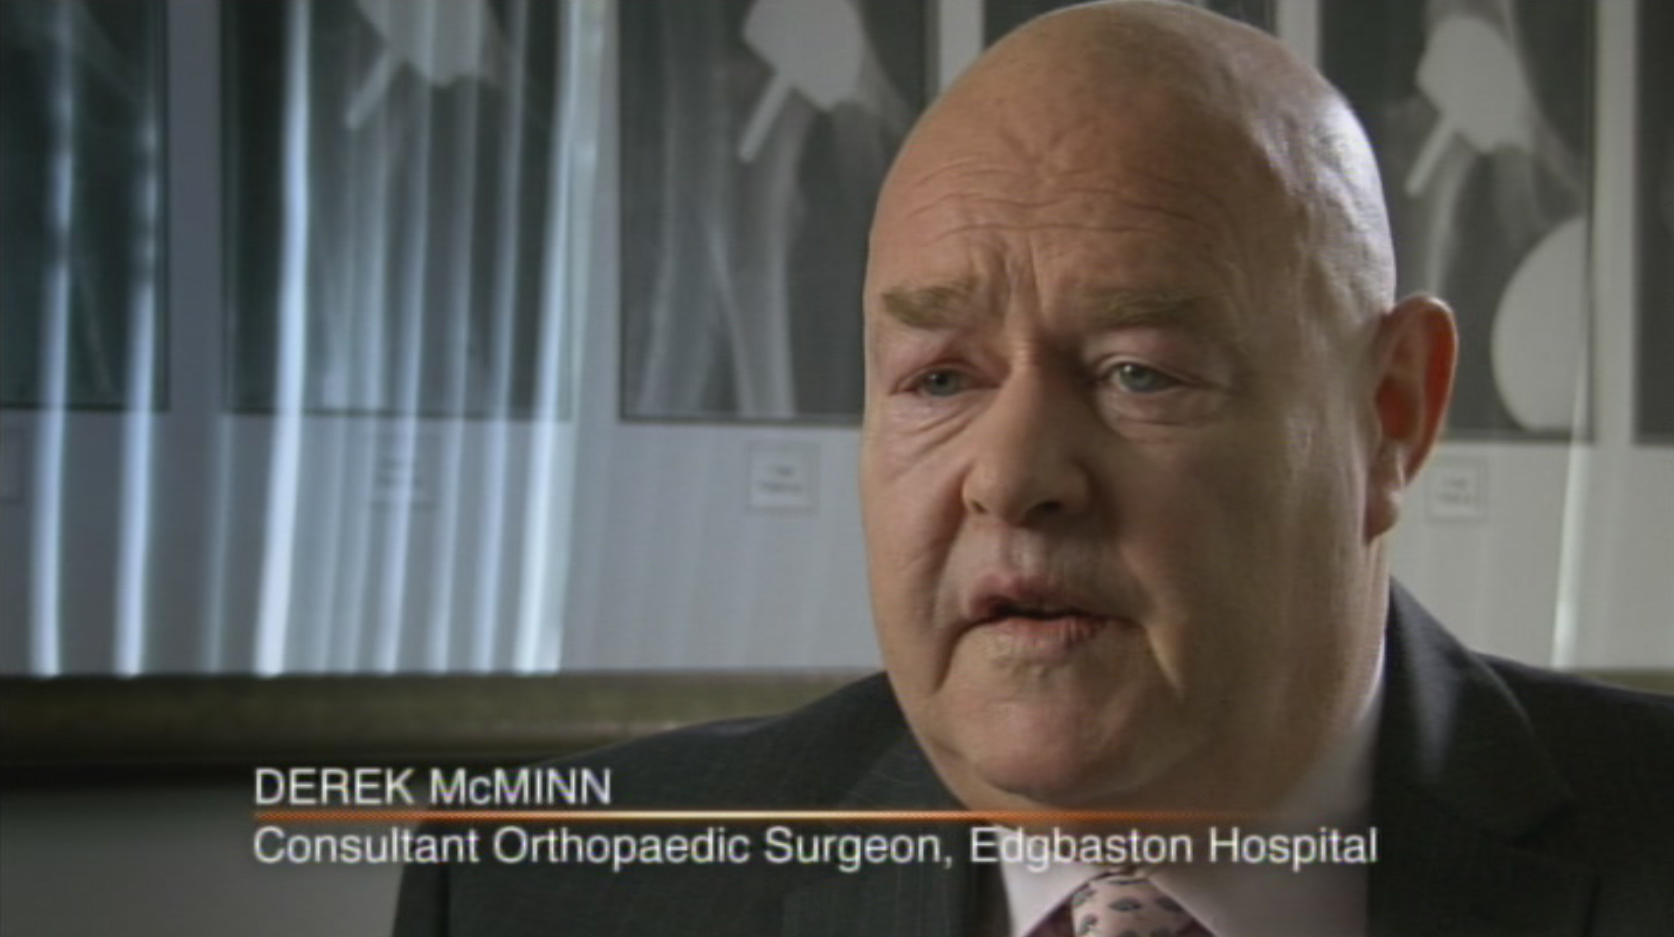 Mr Derek McMinn MD FRCS, Consultant Orthopaedic Surgeon